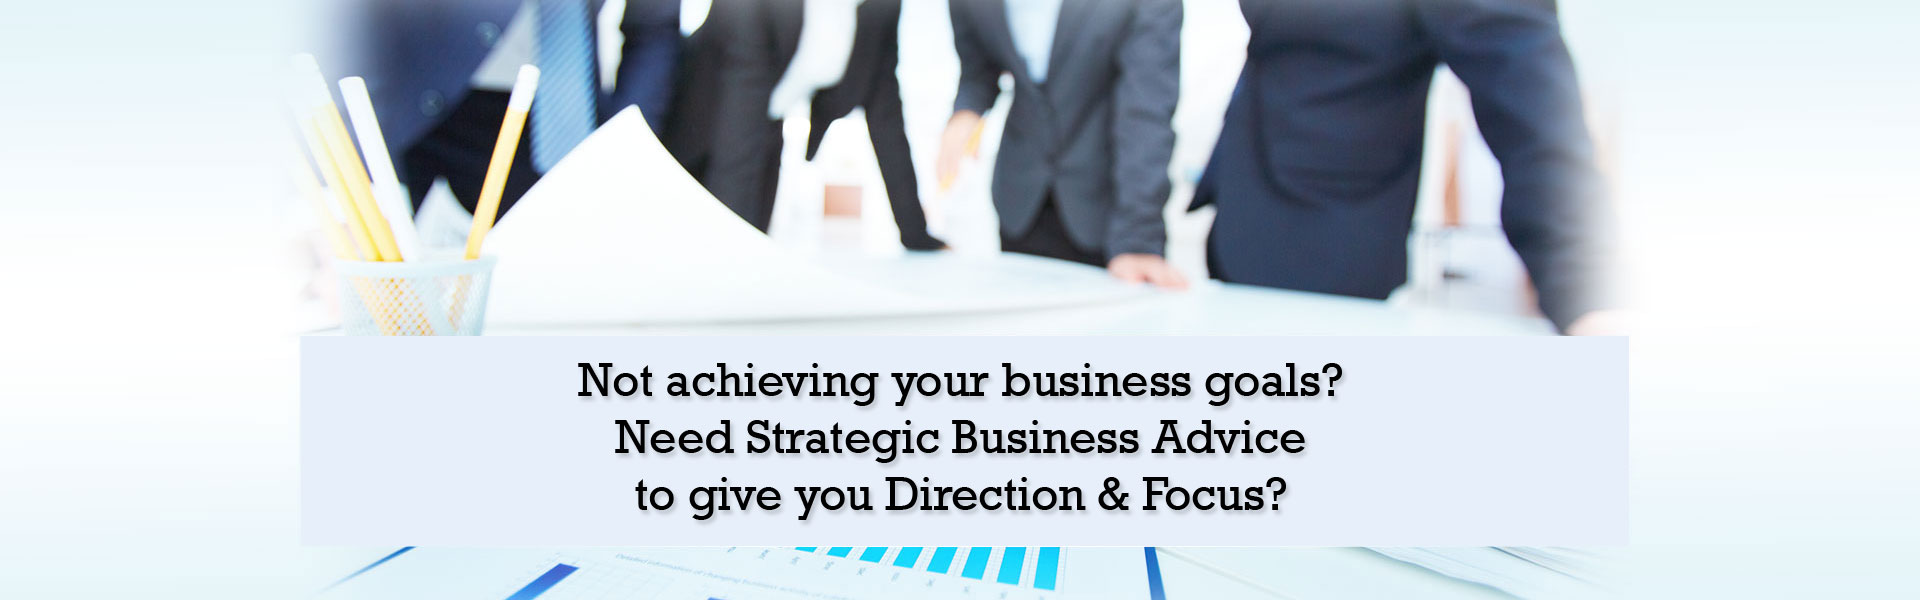 Not achieving your business goals? Need Strategic Business Advice Planning support to give you Direction & Focus?